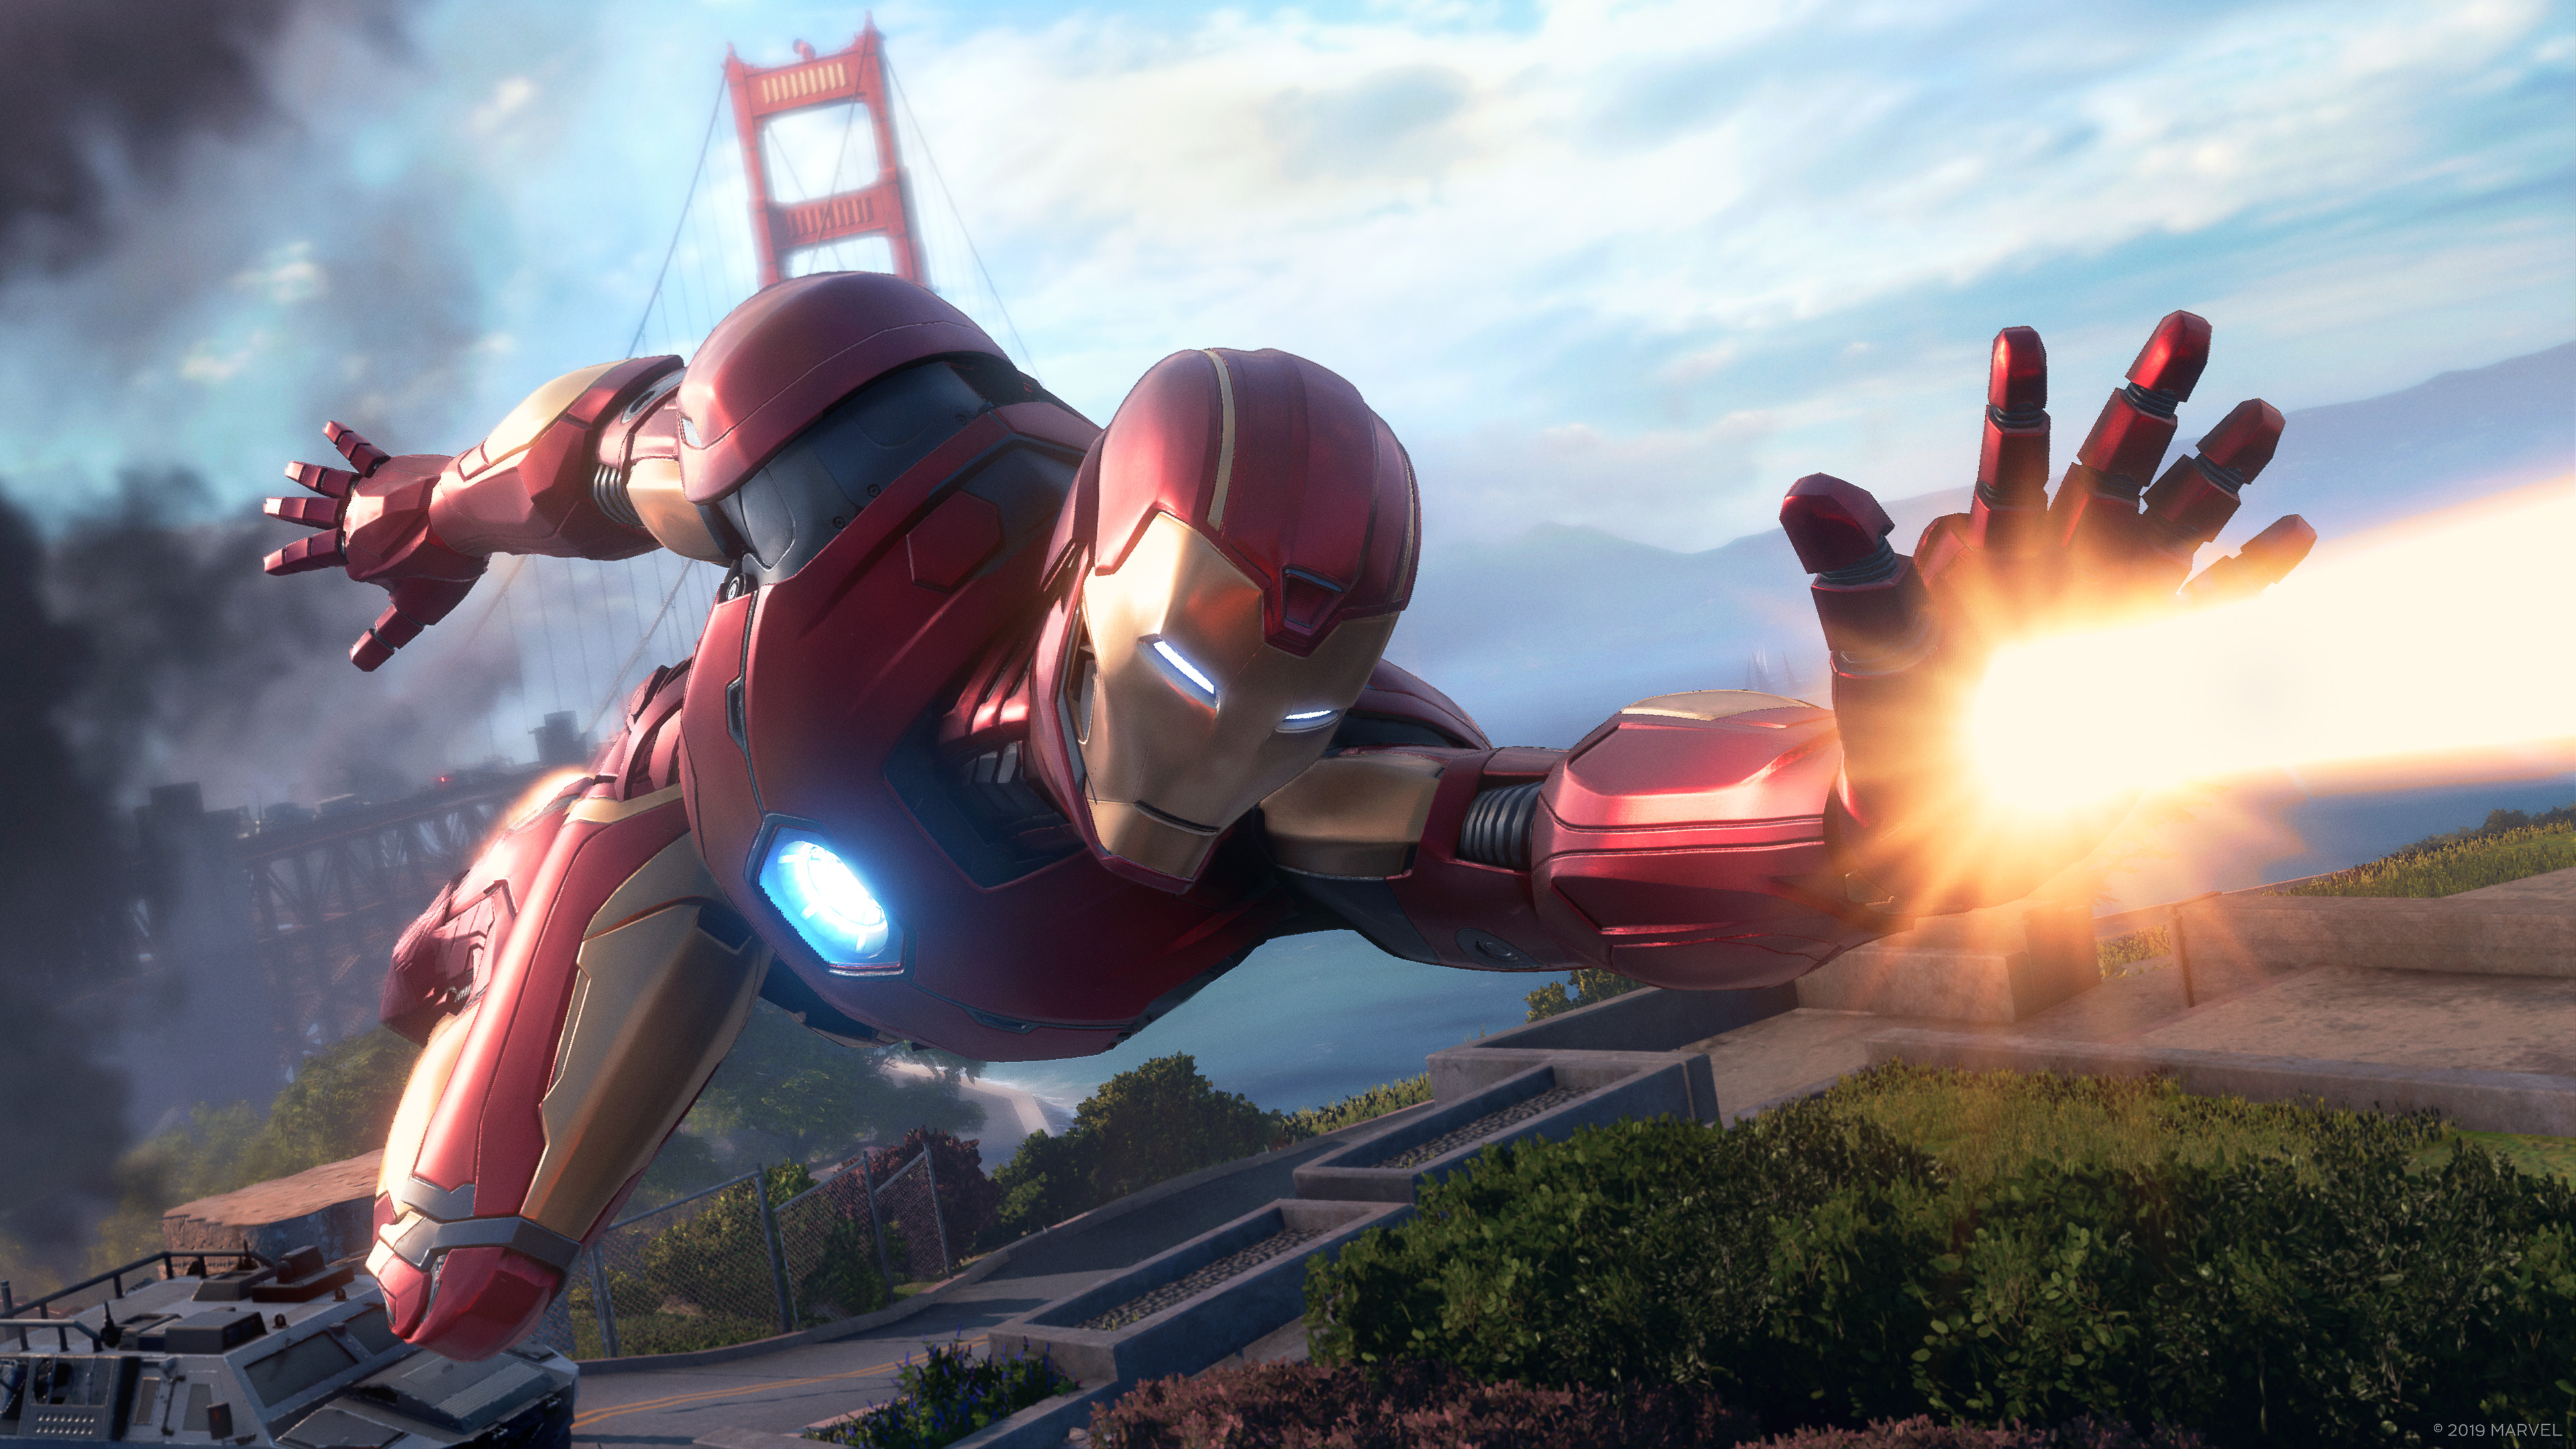 Virgin Media customers can try out Marvel's Avengers this weekend